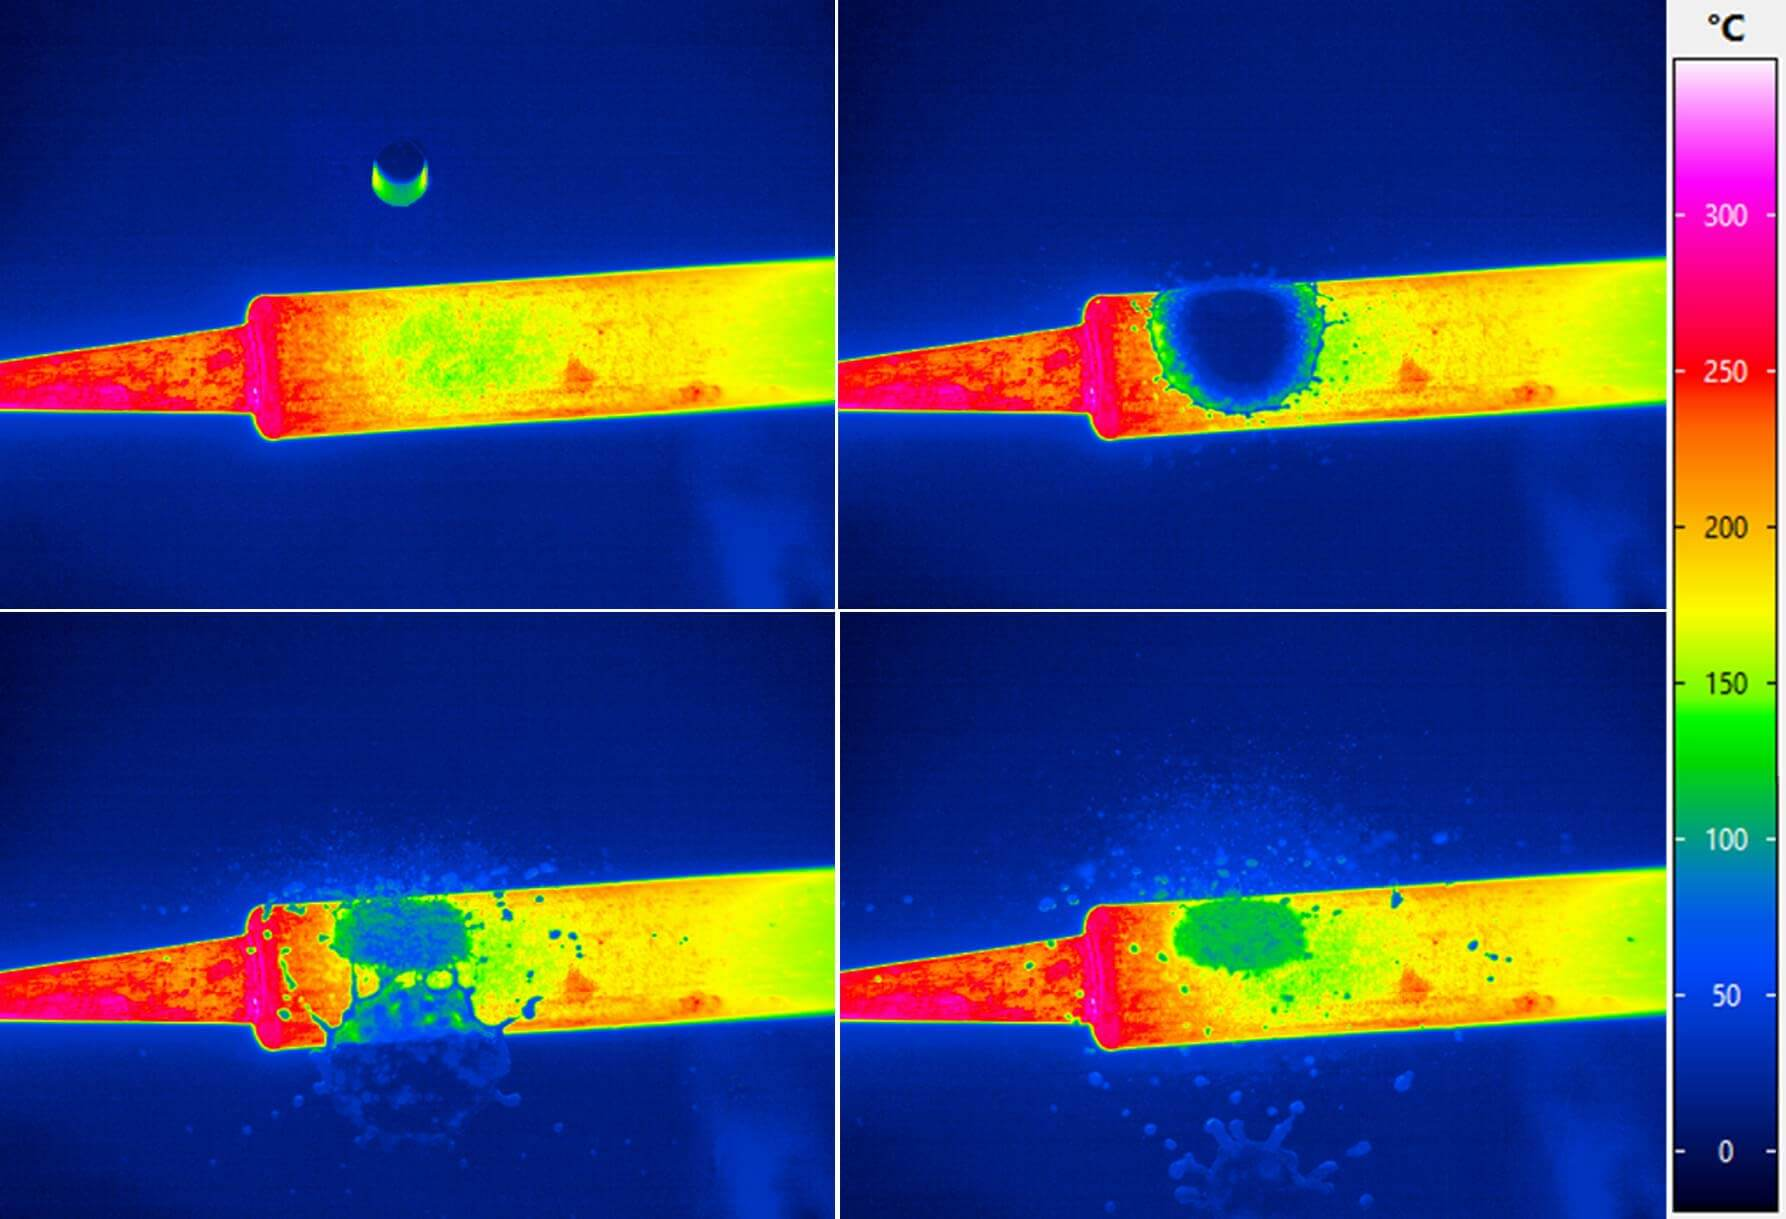 Thermographic image of a soldering iron when a drop of water strikes